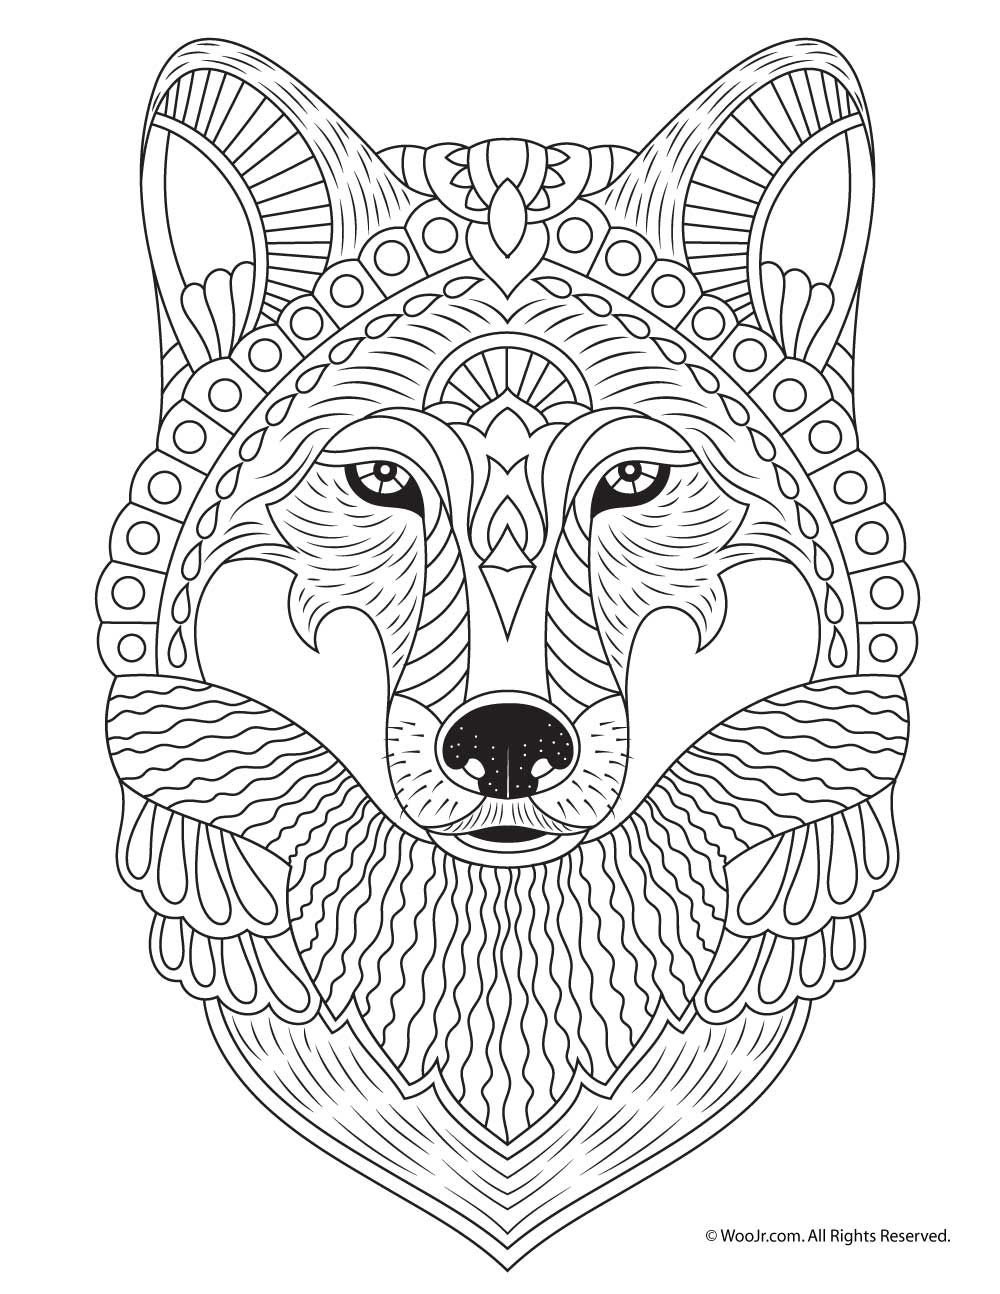 Wolf Adult Coloring Page Mandala coloring pages, Adult